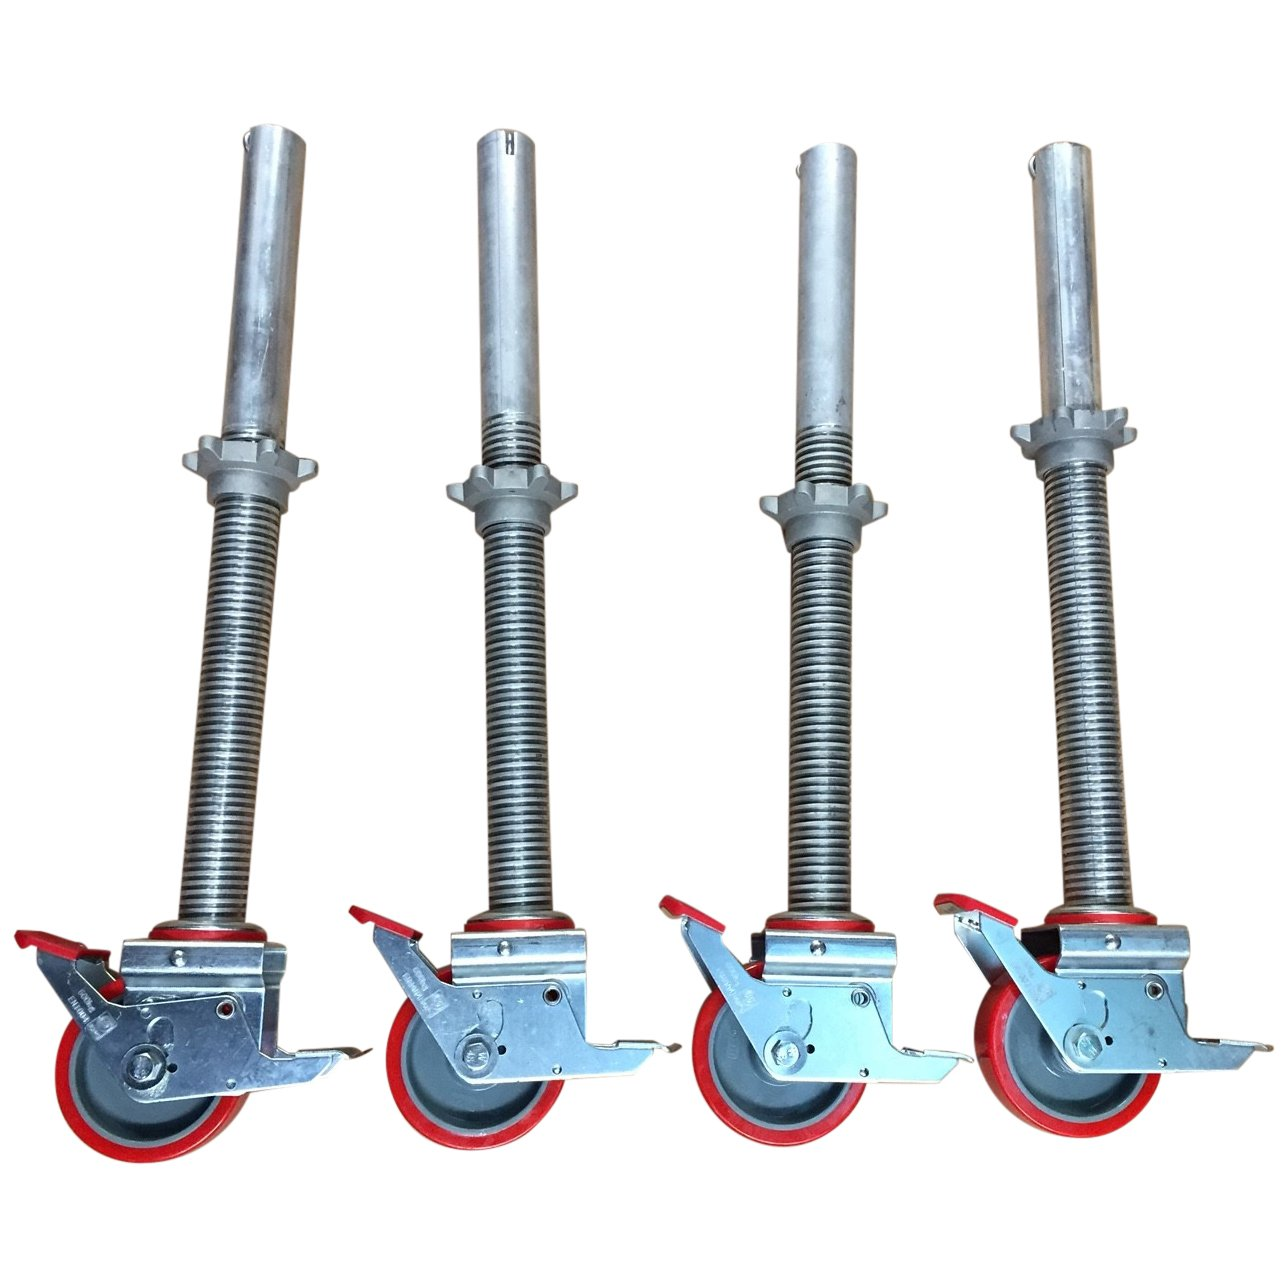 Set of 4 Adjustable Legs & Castors for Alloy Scaffold Tower Toptower